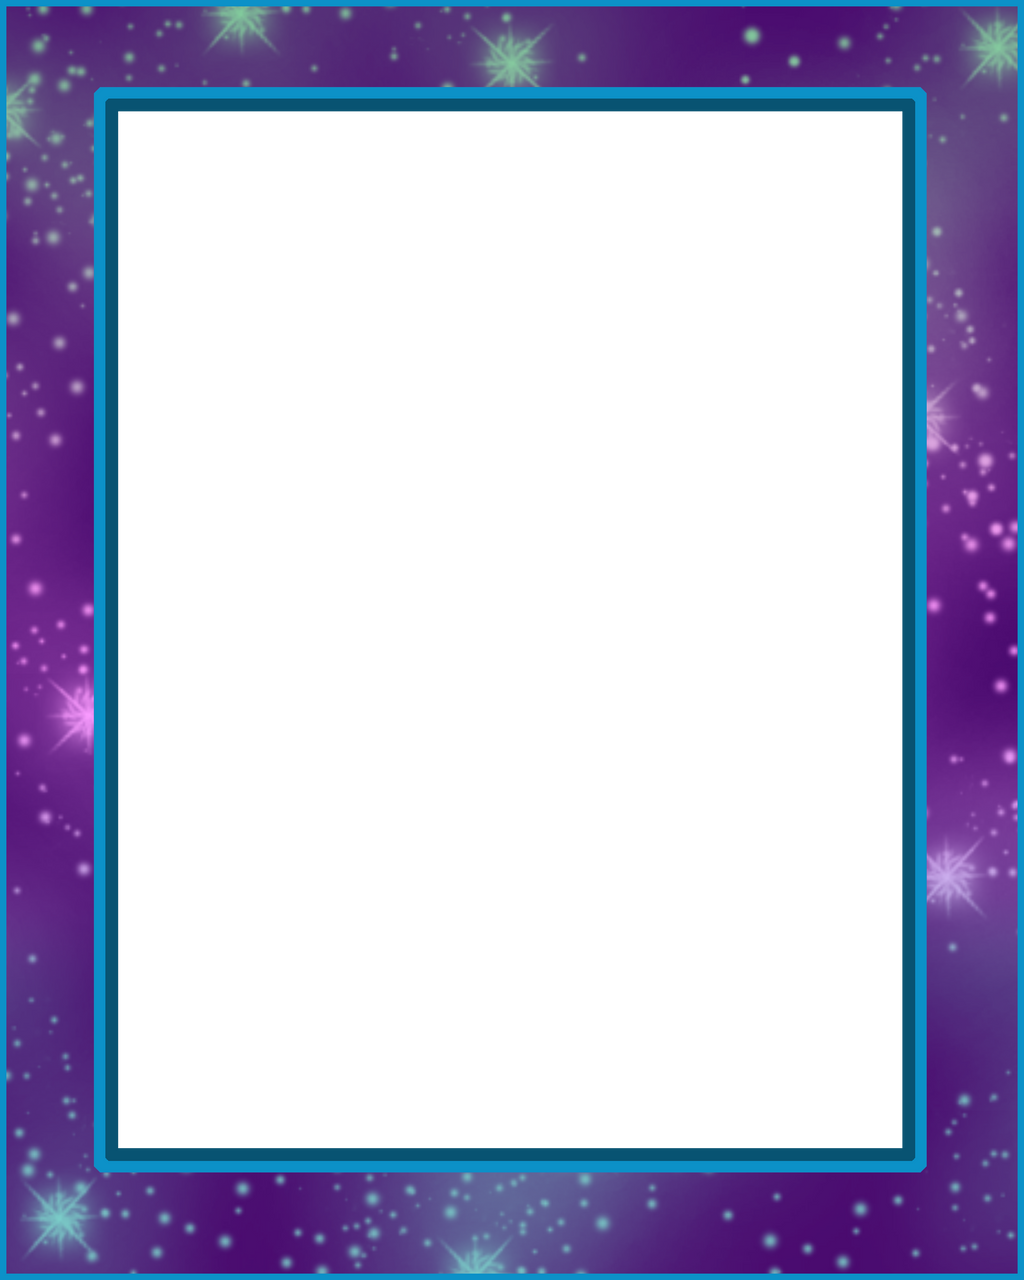 8x10 Frame Mat Purple Stars Png By Blissfullimaging On